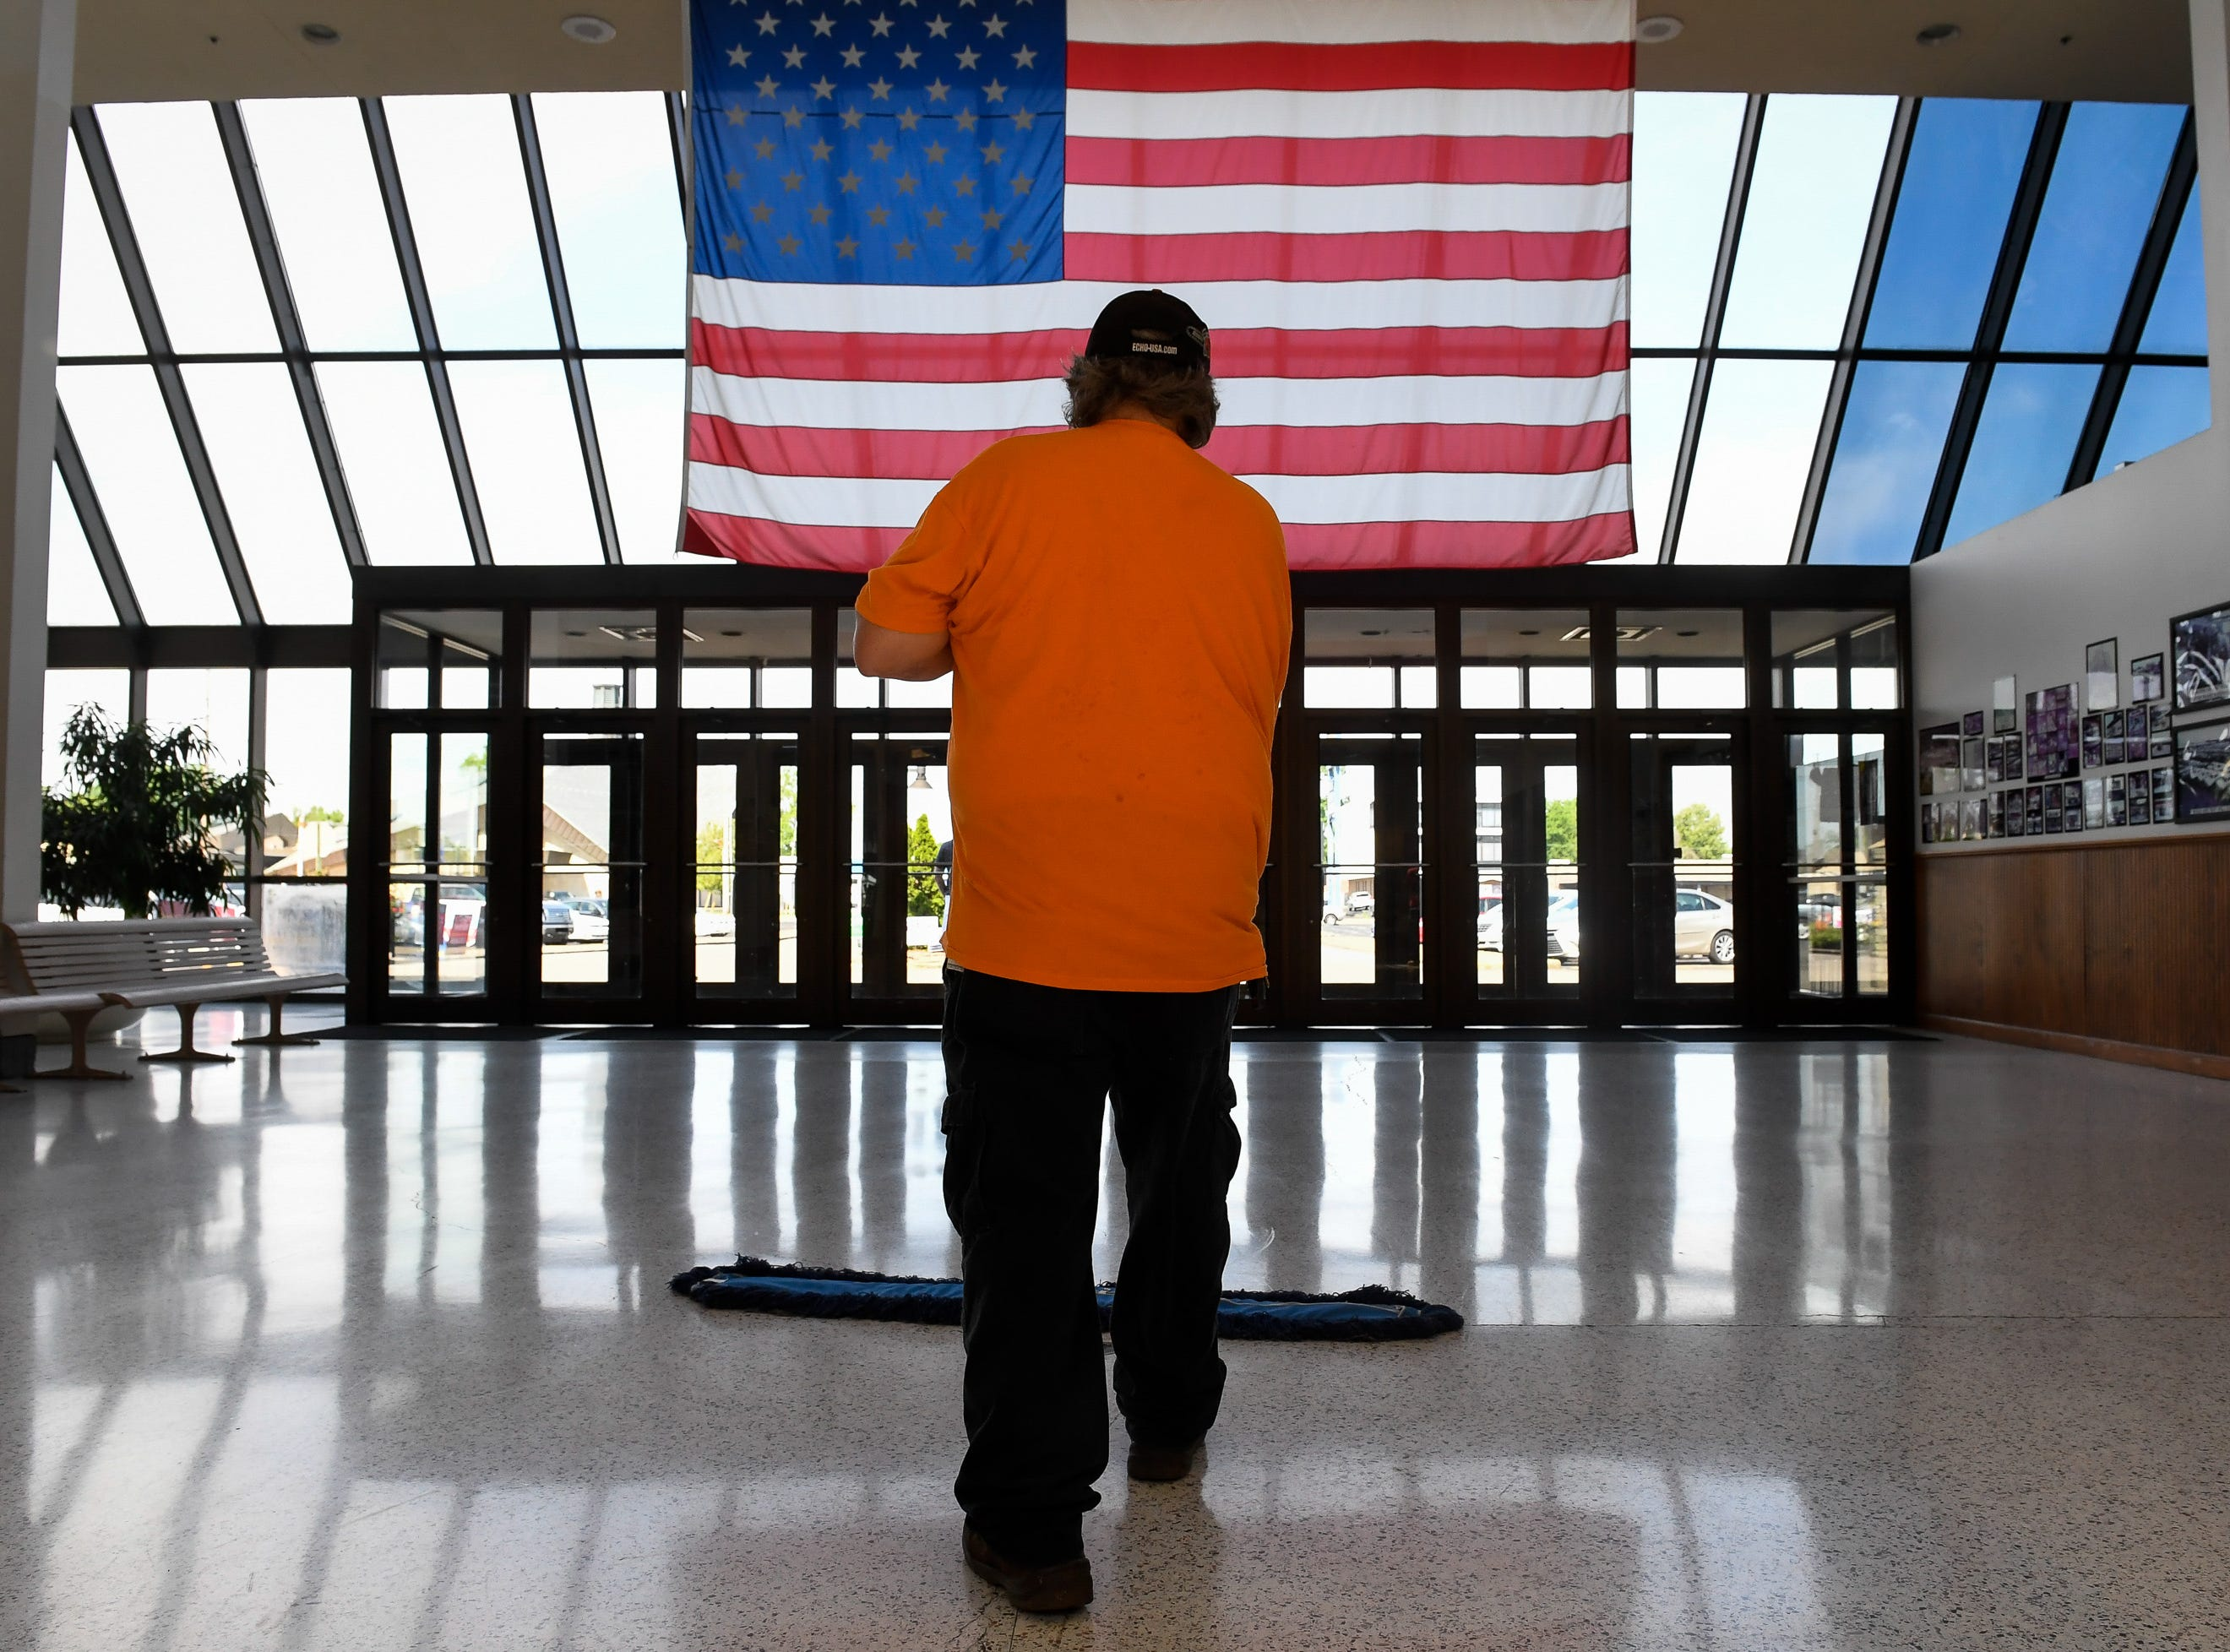 David Kendall keeps the entrance clean at the Washington Square voting center Tuesday, May 7, 2019.